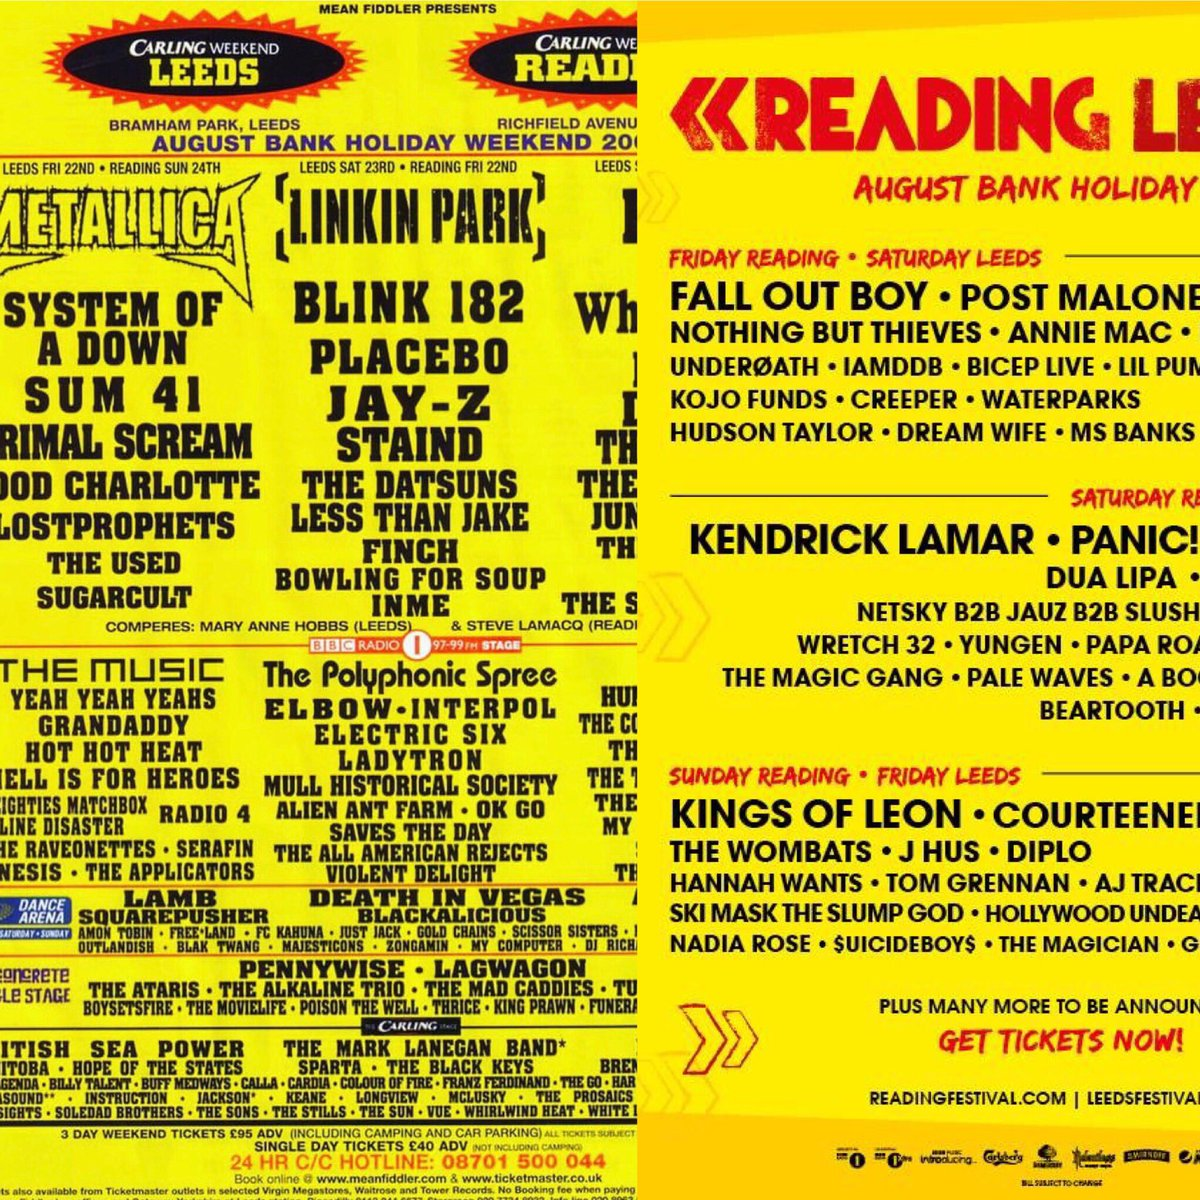 RT @silvaradke: What has happened to reading and Leeds festival use to be so good now it's lost its pride https://t.co/jy0ht50WnX